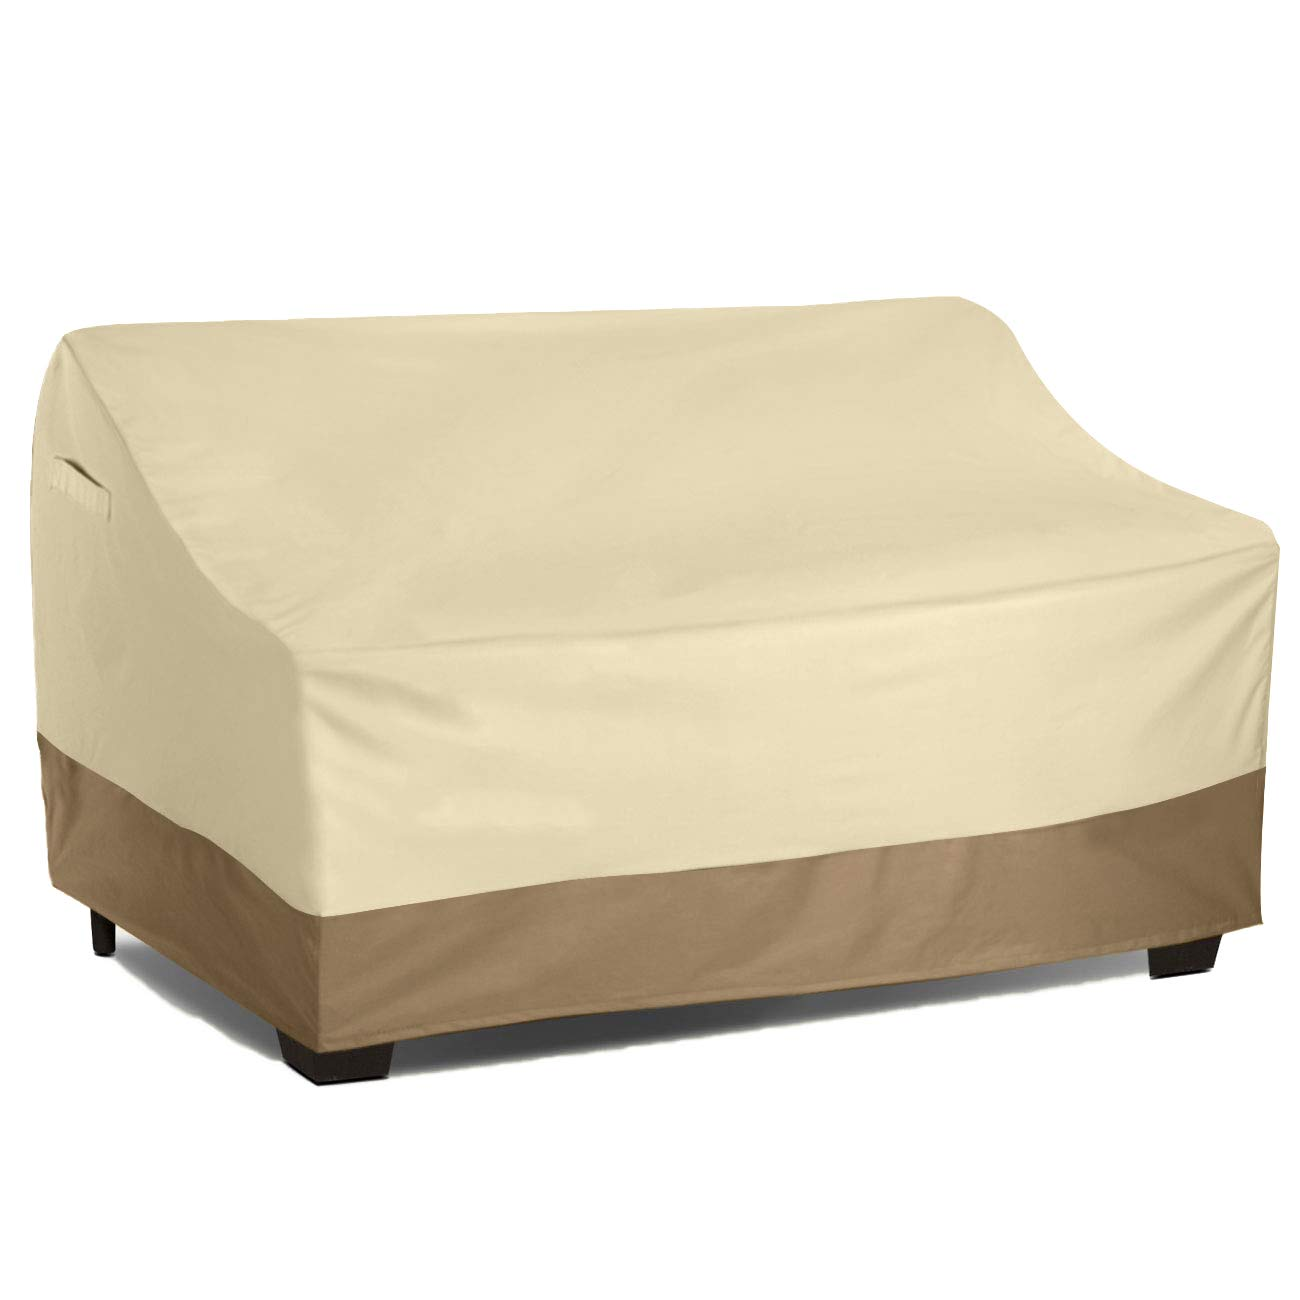 Vanteriam Waterproof Bench/Loveseat Cover, Large Outdoor Furniture Covers Waterproof for Loveseat/Bench.